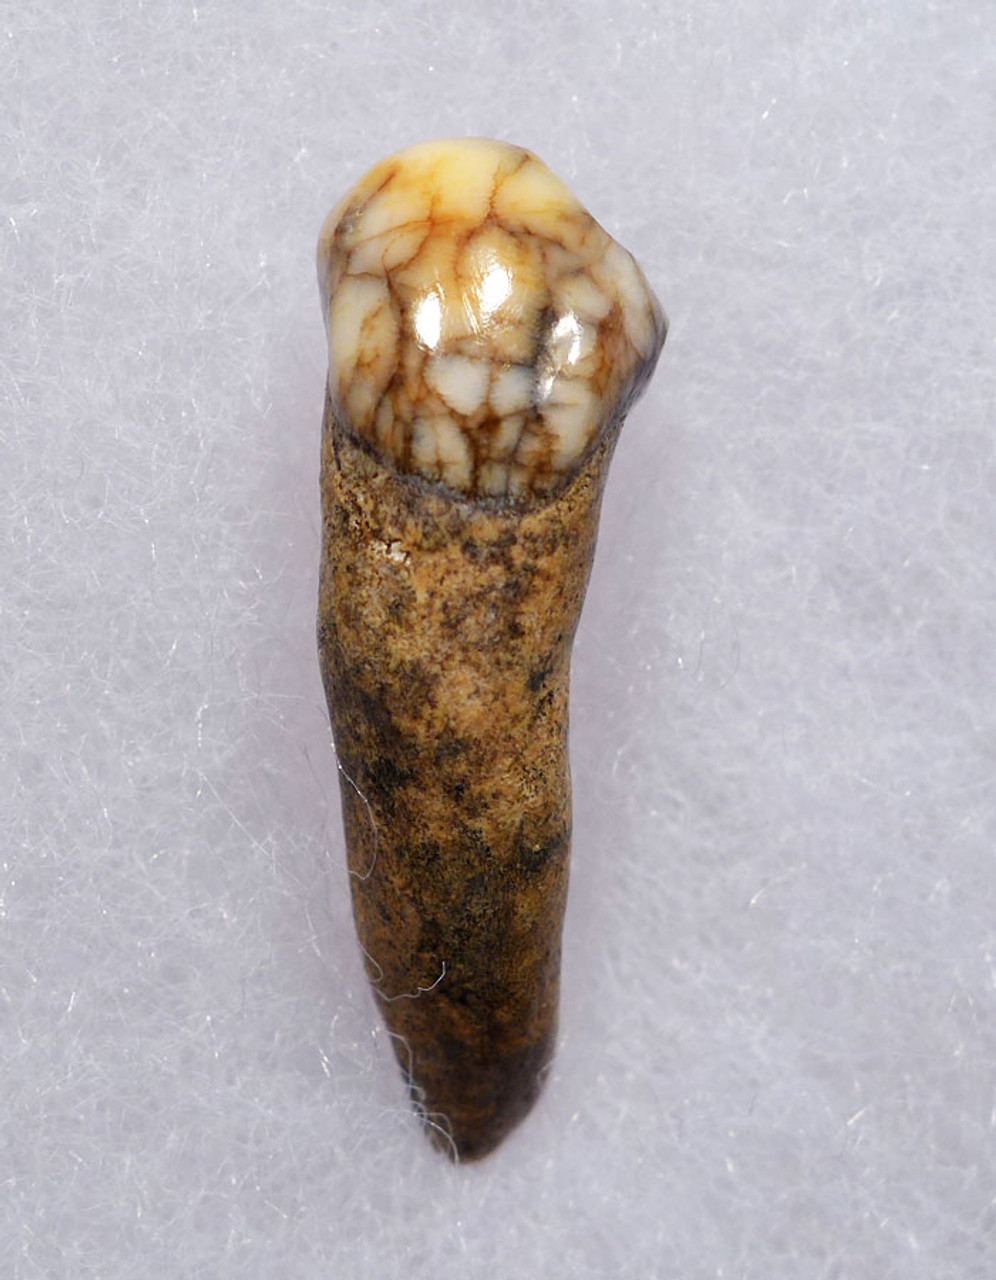 COLORFUL HIGH QUALITY CAVE BEAR FOSSIL TOOTH WITH ROOT FROM THE FAMOUS DRACHENHOHLE DRAGONS CAVE IN AUSTRIA *CB007